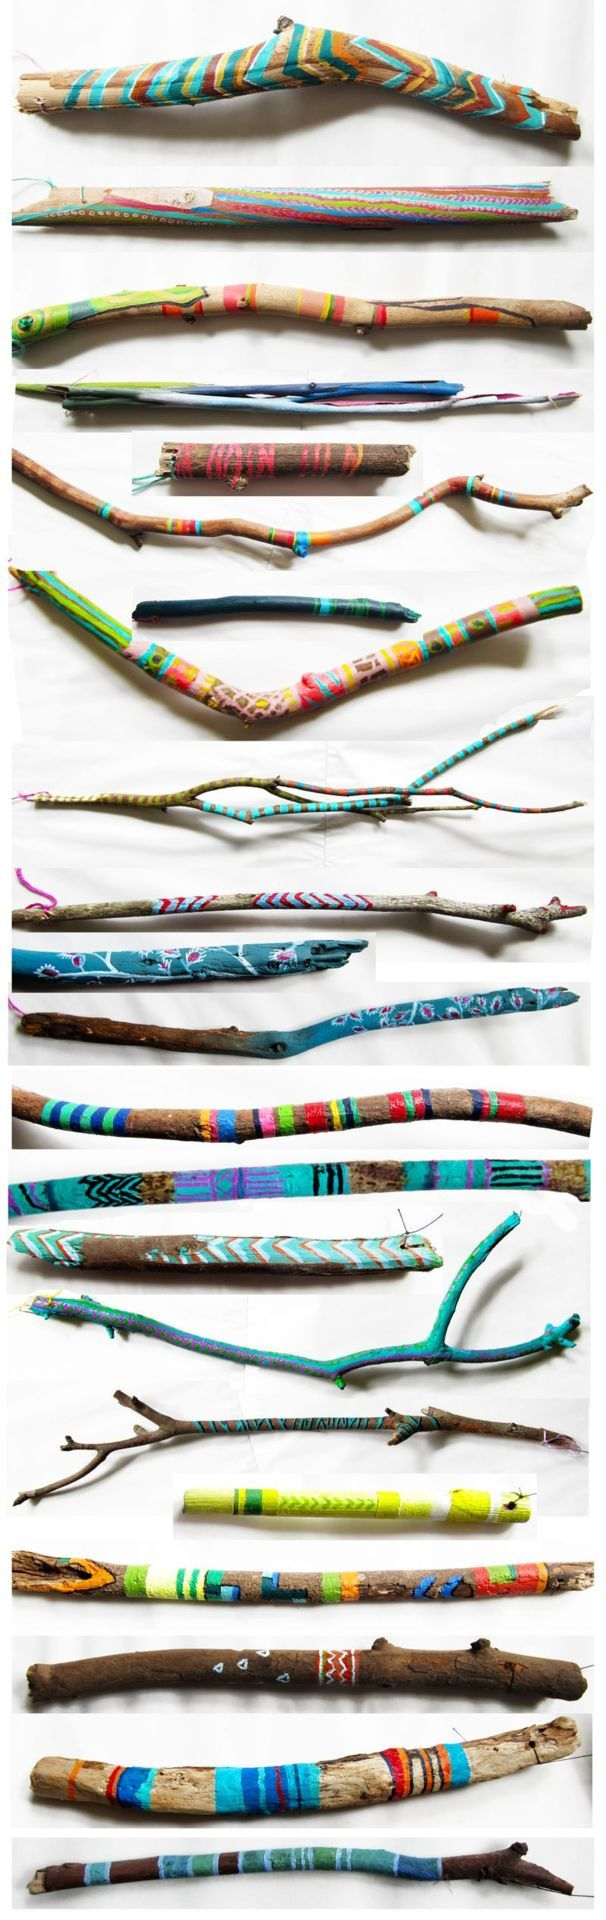 Painted twigs & driftwood. still love them...